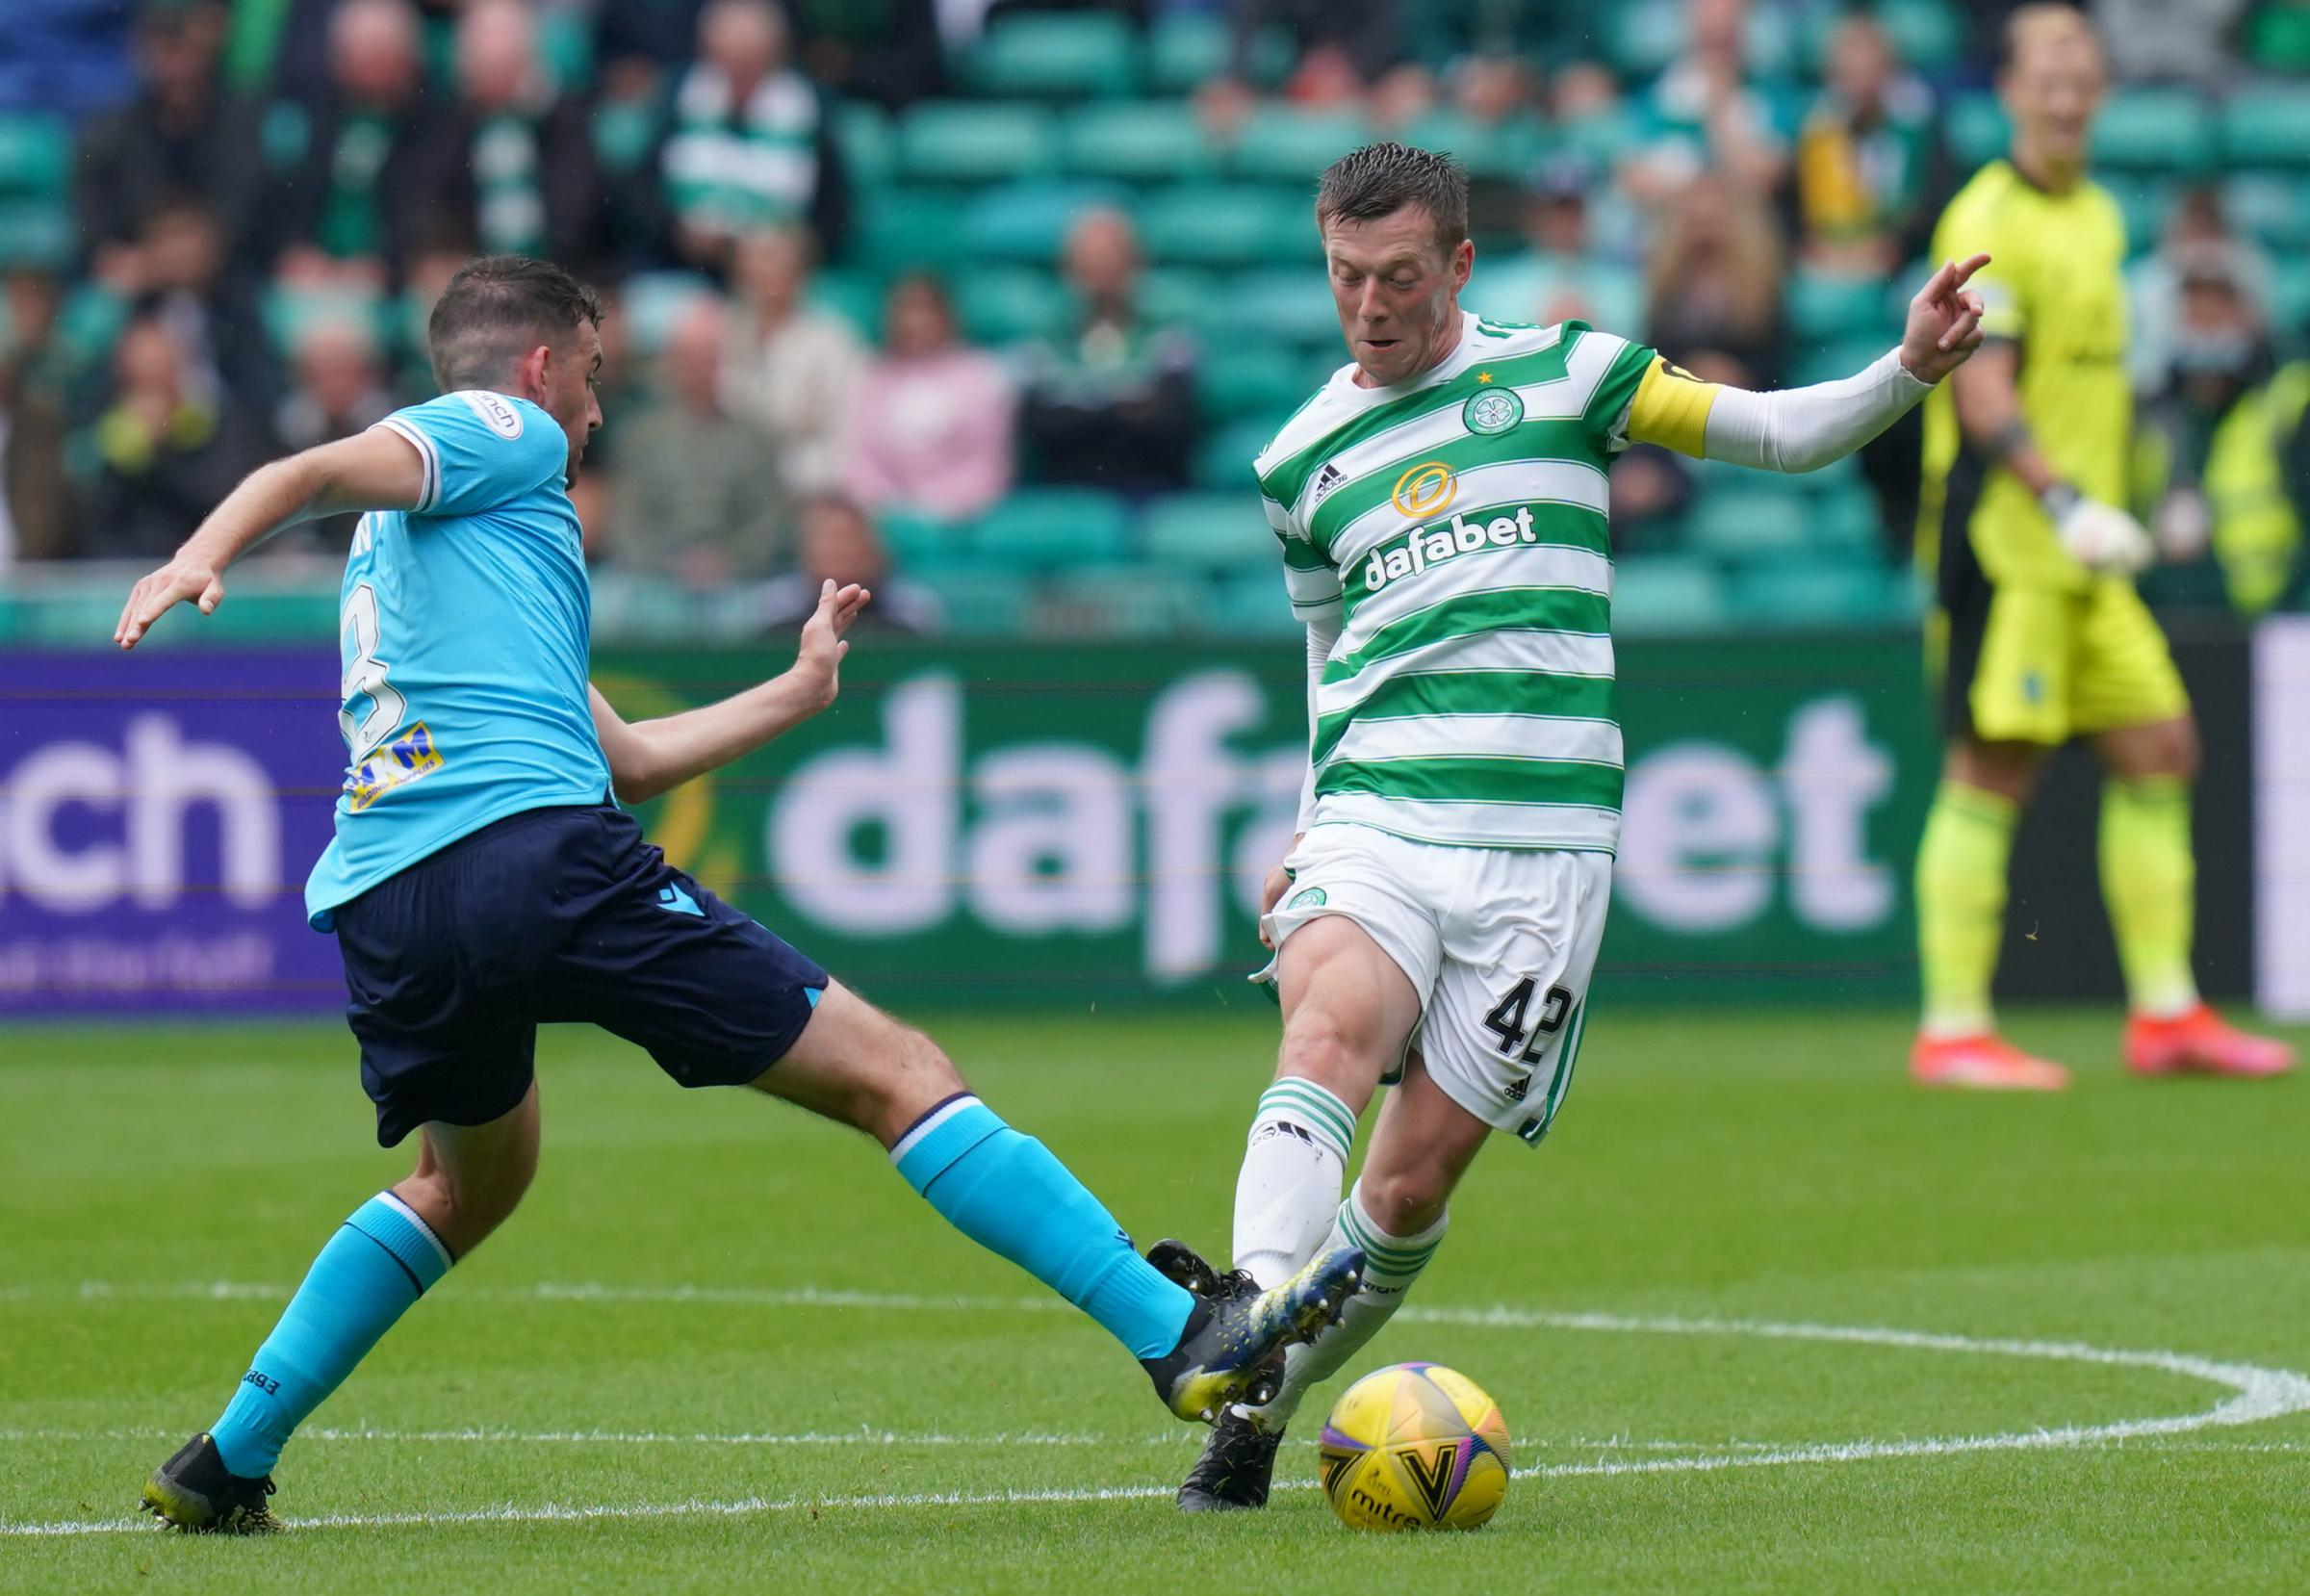 Callum McGregor on Celtic seizing the momentum, guarding against complacency, and Kyogo Furuhashi's fluency in the language of football